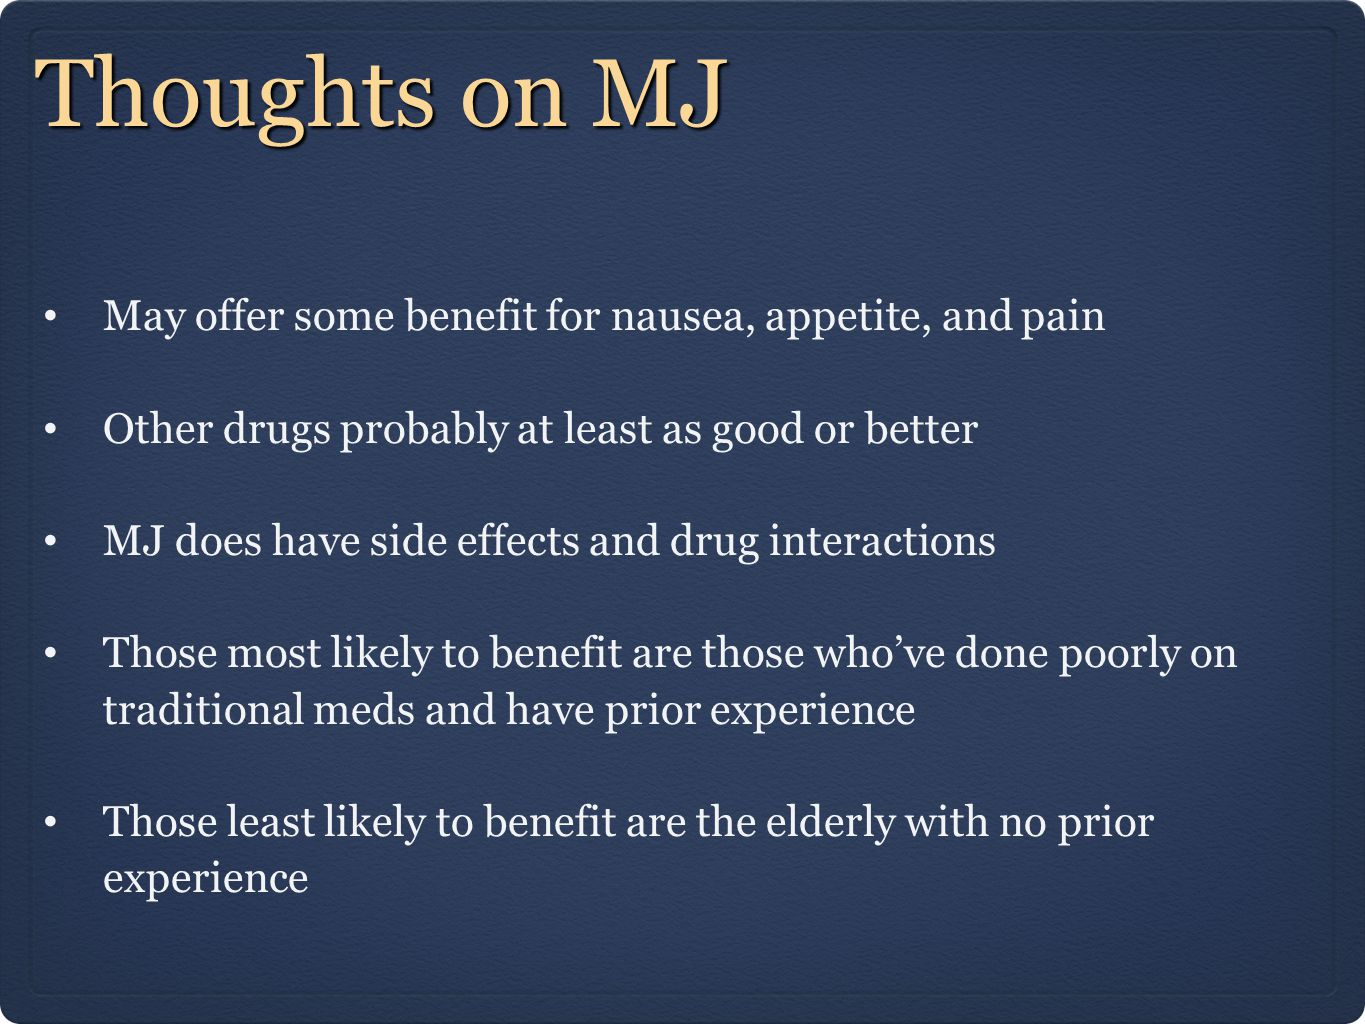 Thoughts on MJ May offer some benefit for nausea, appetite, and pain Other drugs probably at least as good or better MJ does have side effects and dru